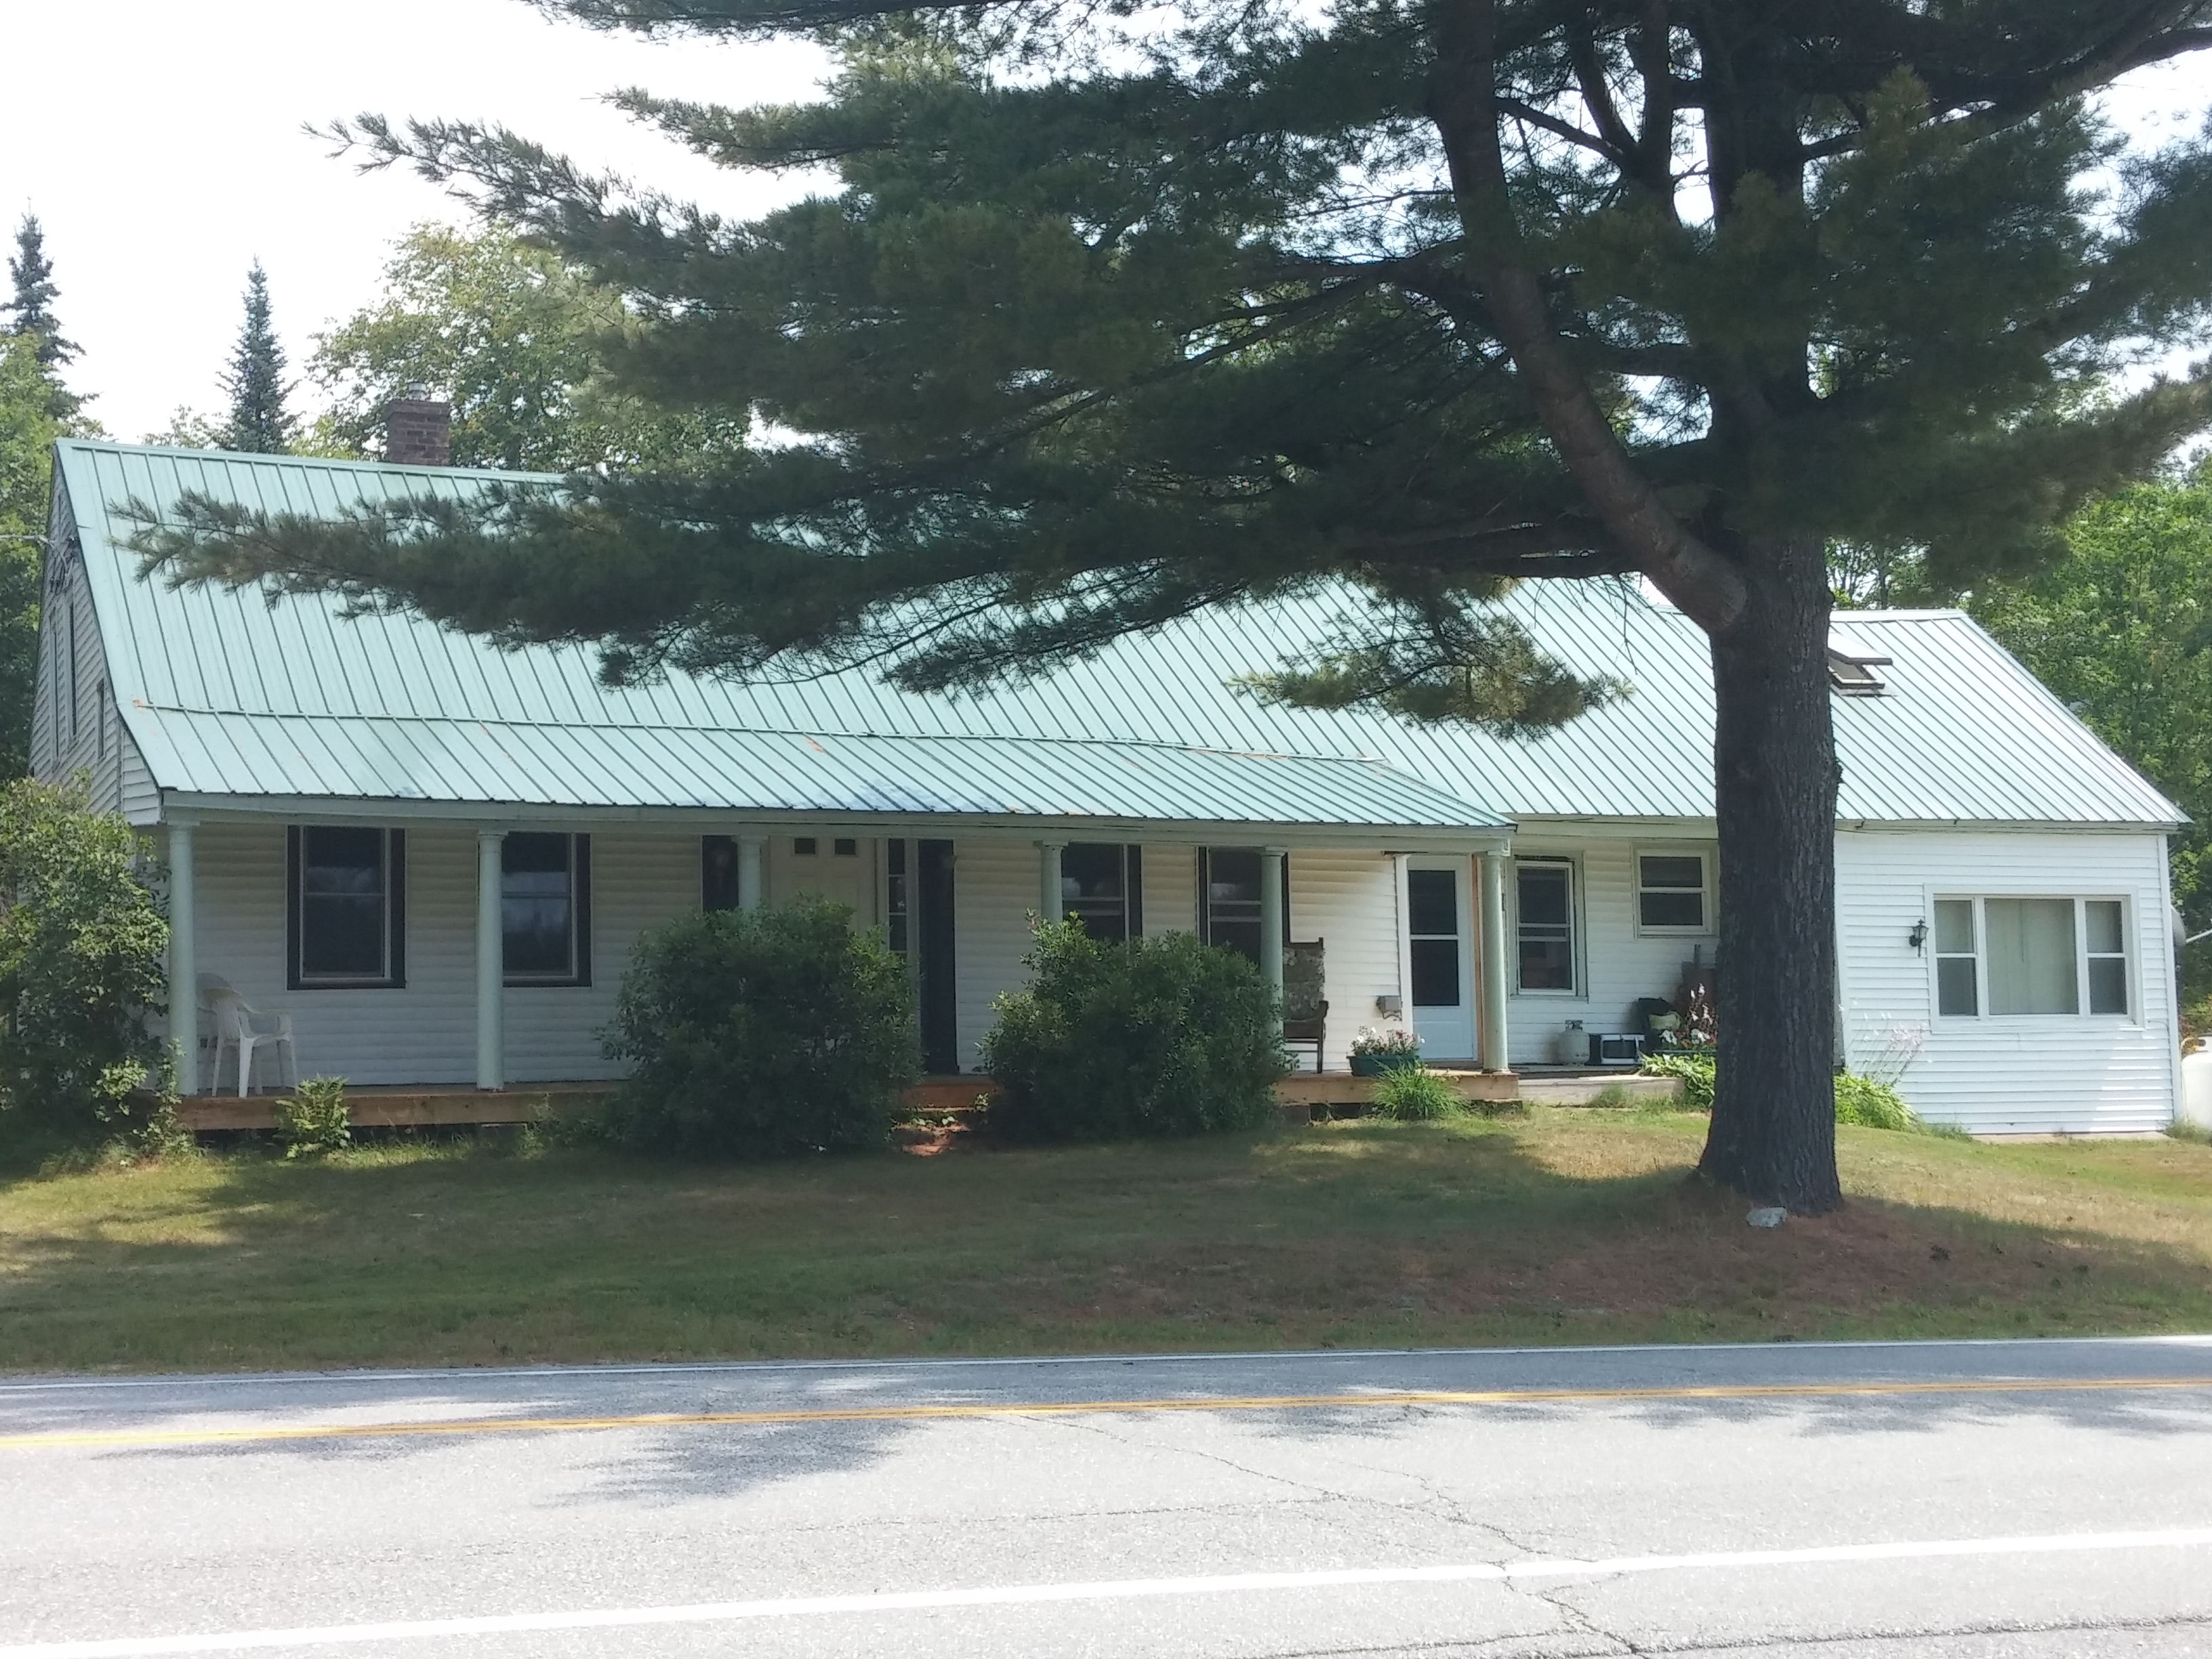 492 NH ROUTE 10, Lempster, New Hampshire 03605